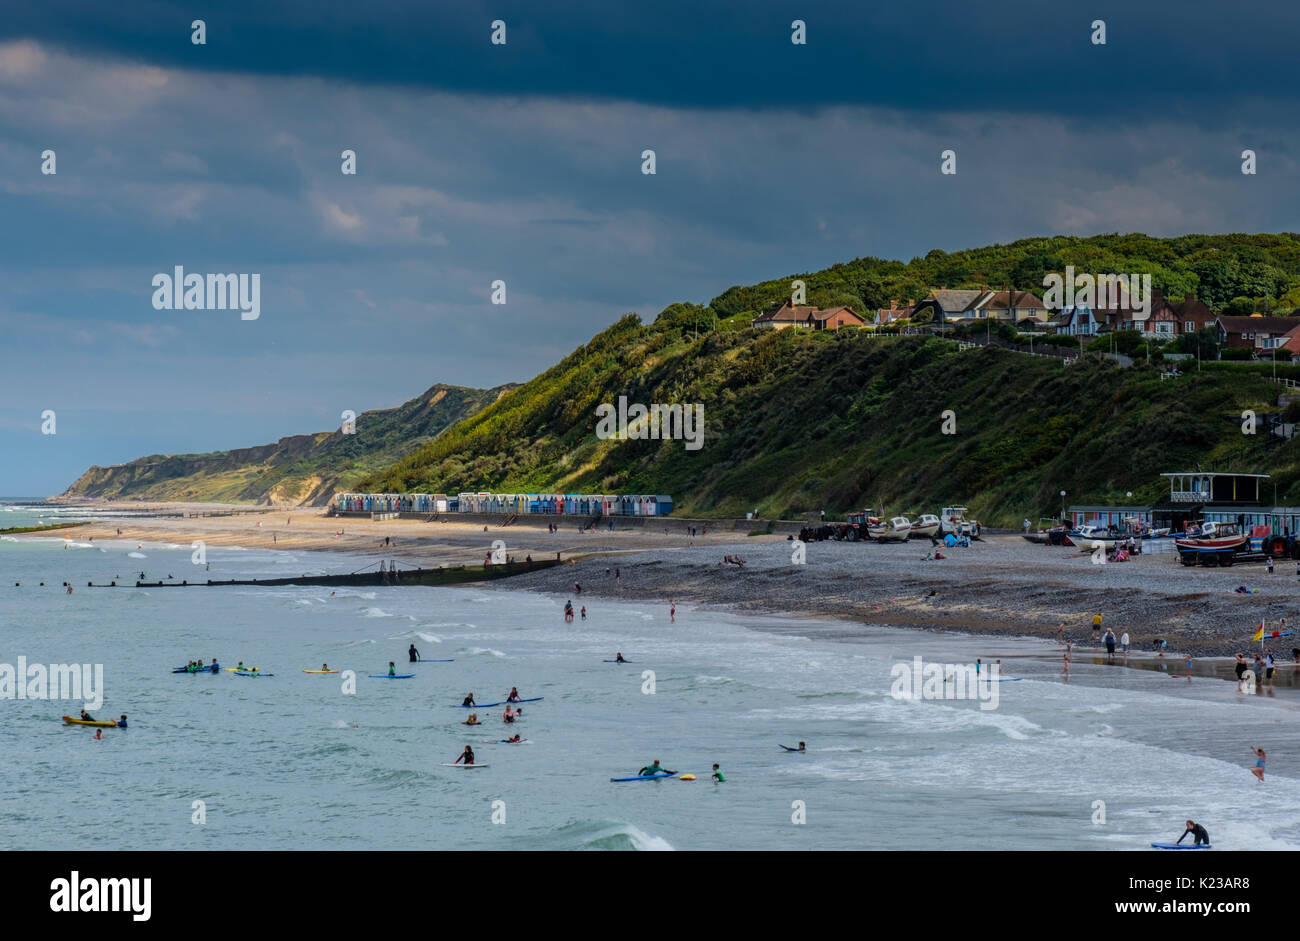 The North Norfolk Coastline seen from Cromer Pier, Cromer, Norfolk, UK - Stock Image